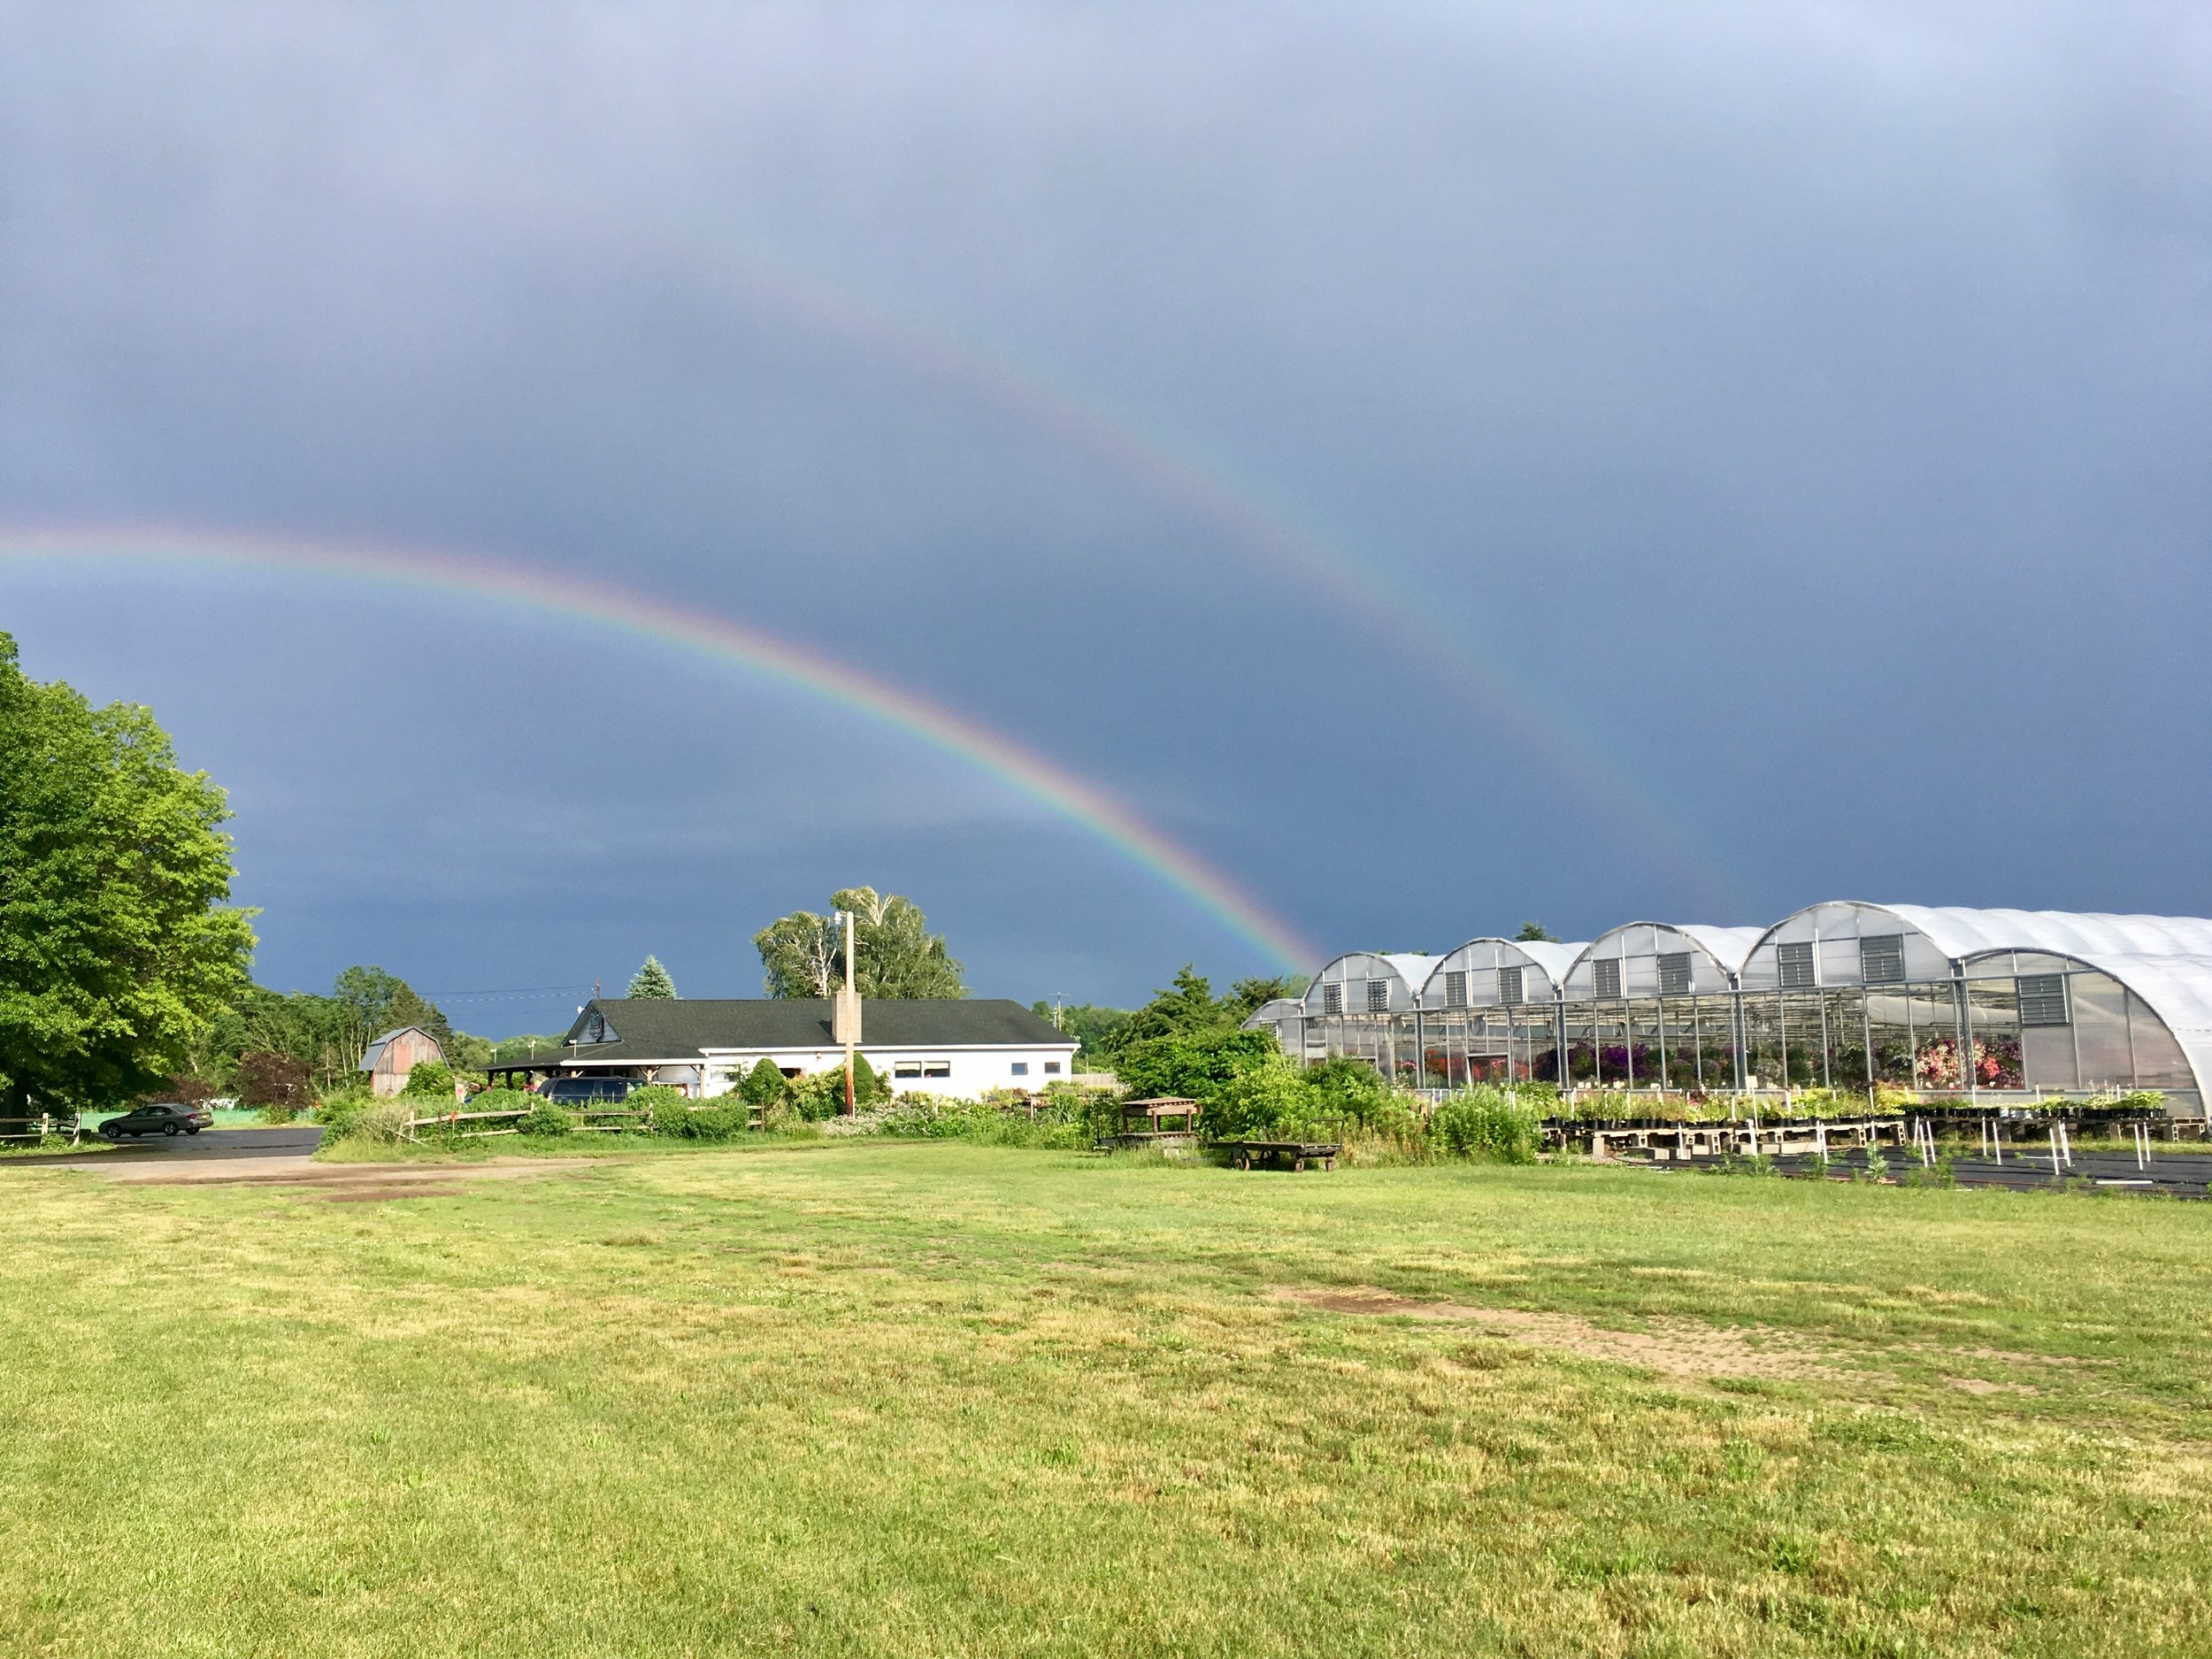 After all this rain, at least there is a bright side! I saw two rainbows in one day, and one of them was this beauty! A double rainbow all the way, right over our market and greenhouse.